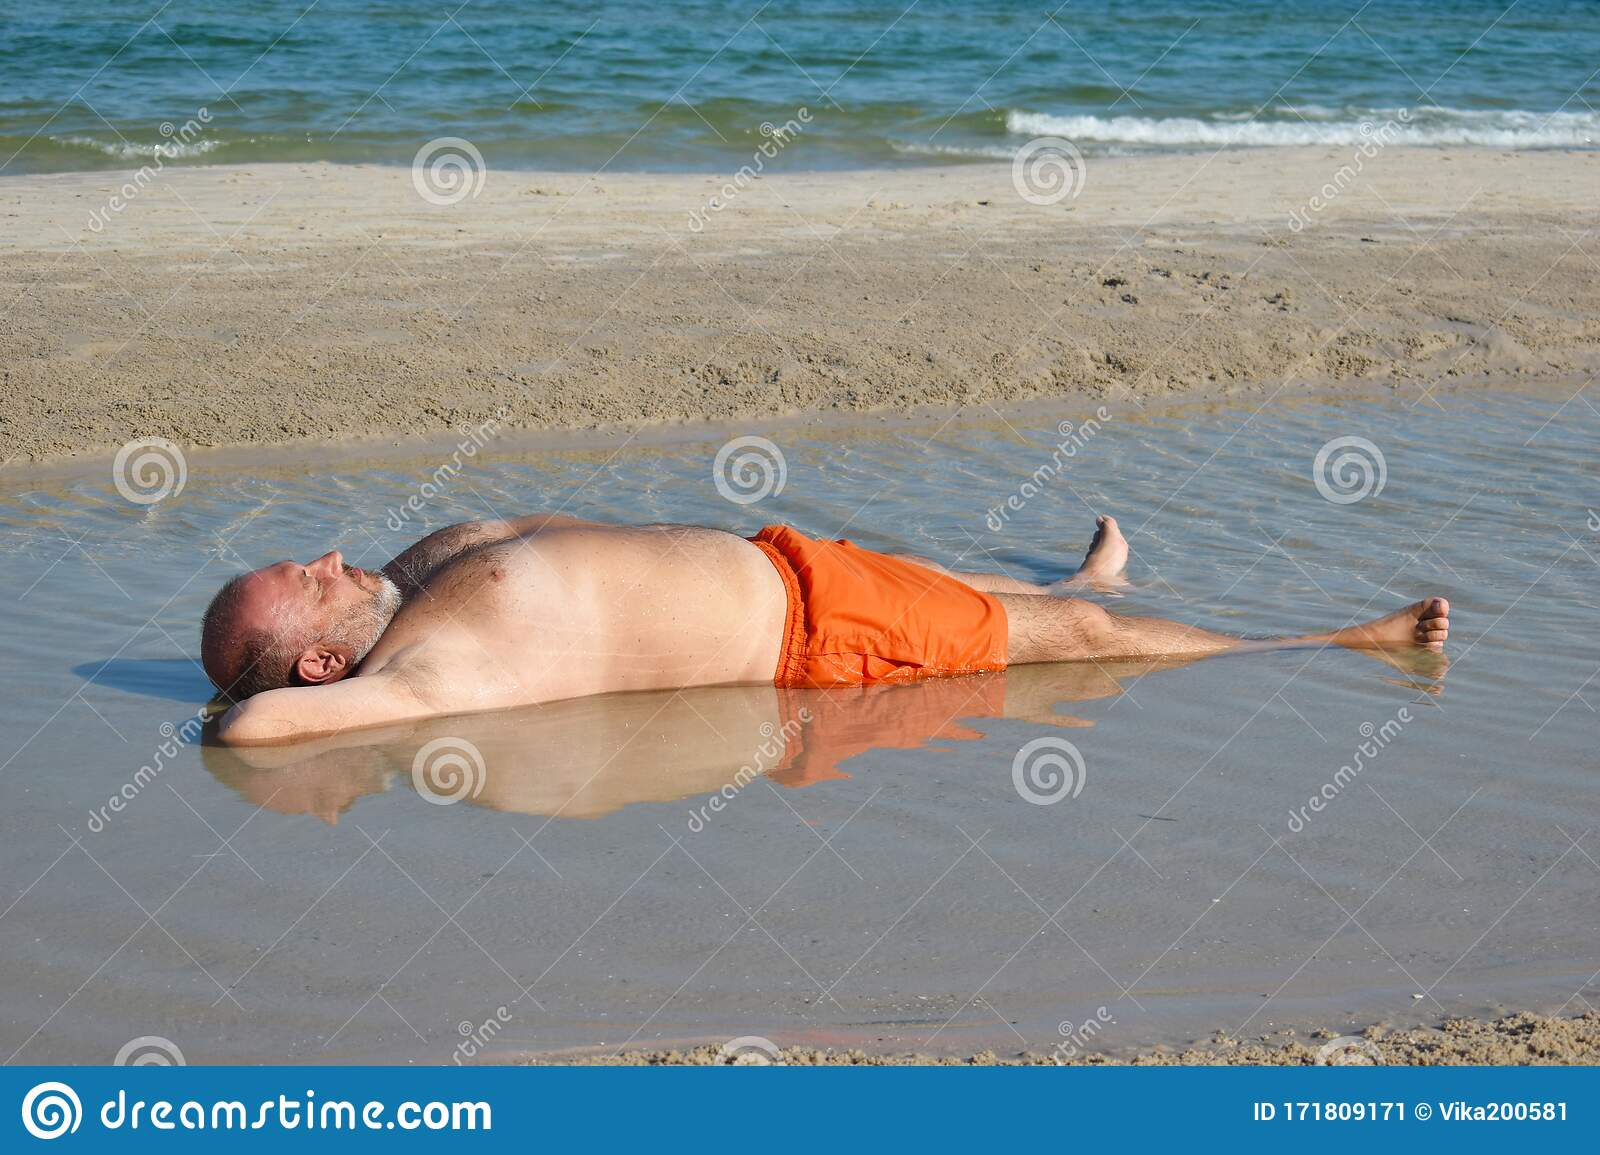 The Man In The Puddle On The Beach Relaxing Holiday By The Sea Fun Beach Photo The Fat Man In The Sea Stock Image Image Of Large Lying 171809171